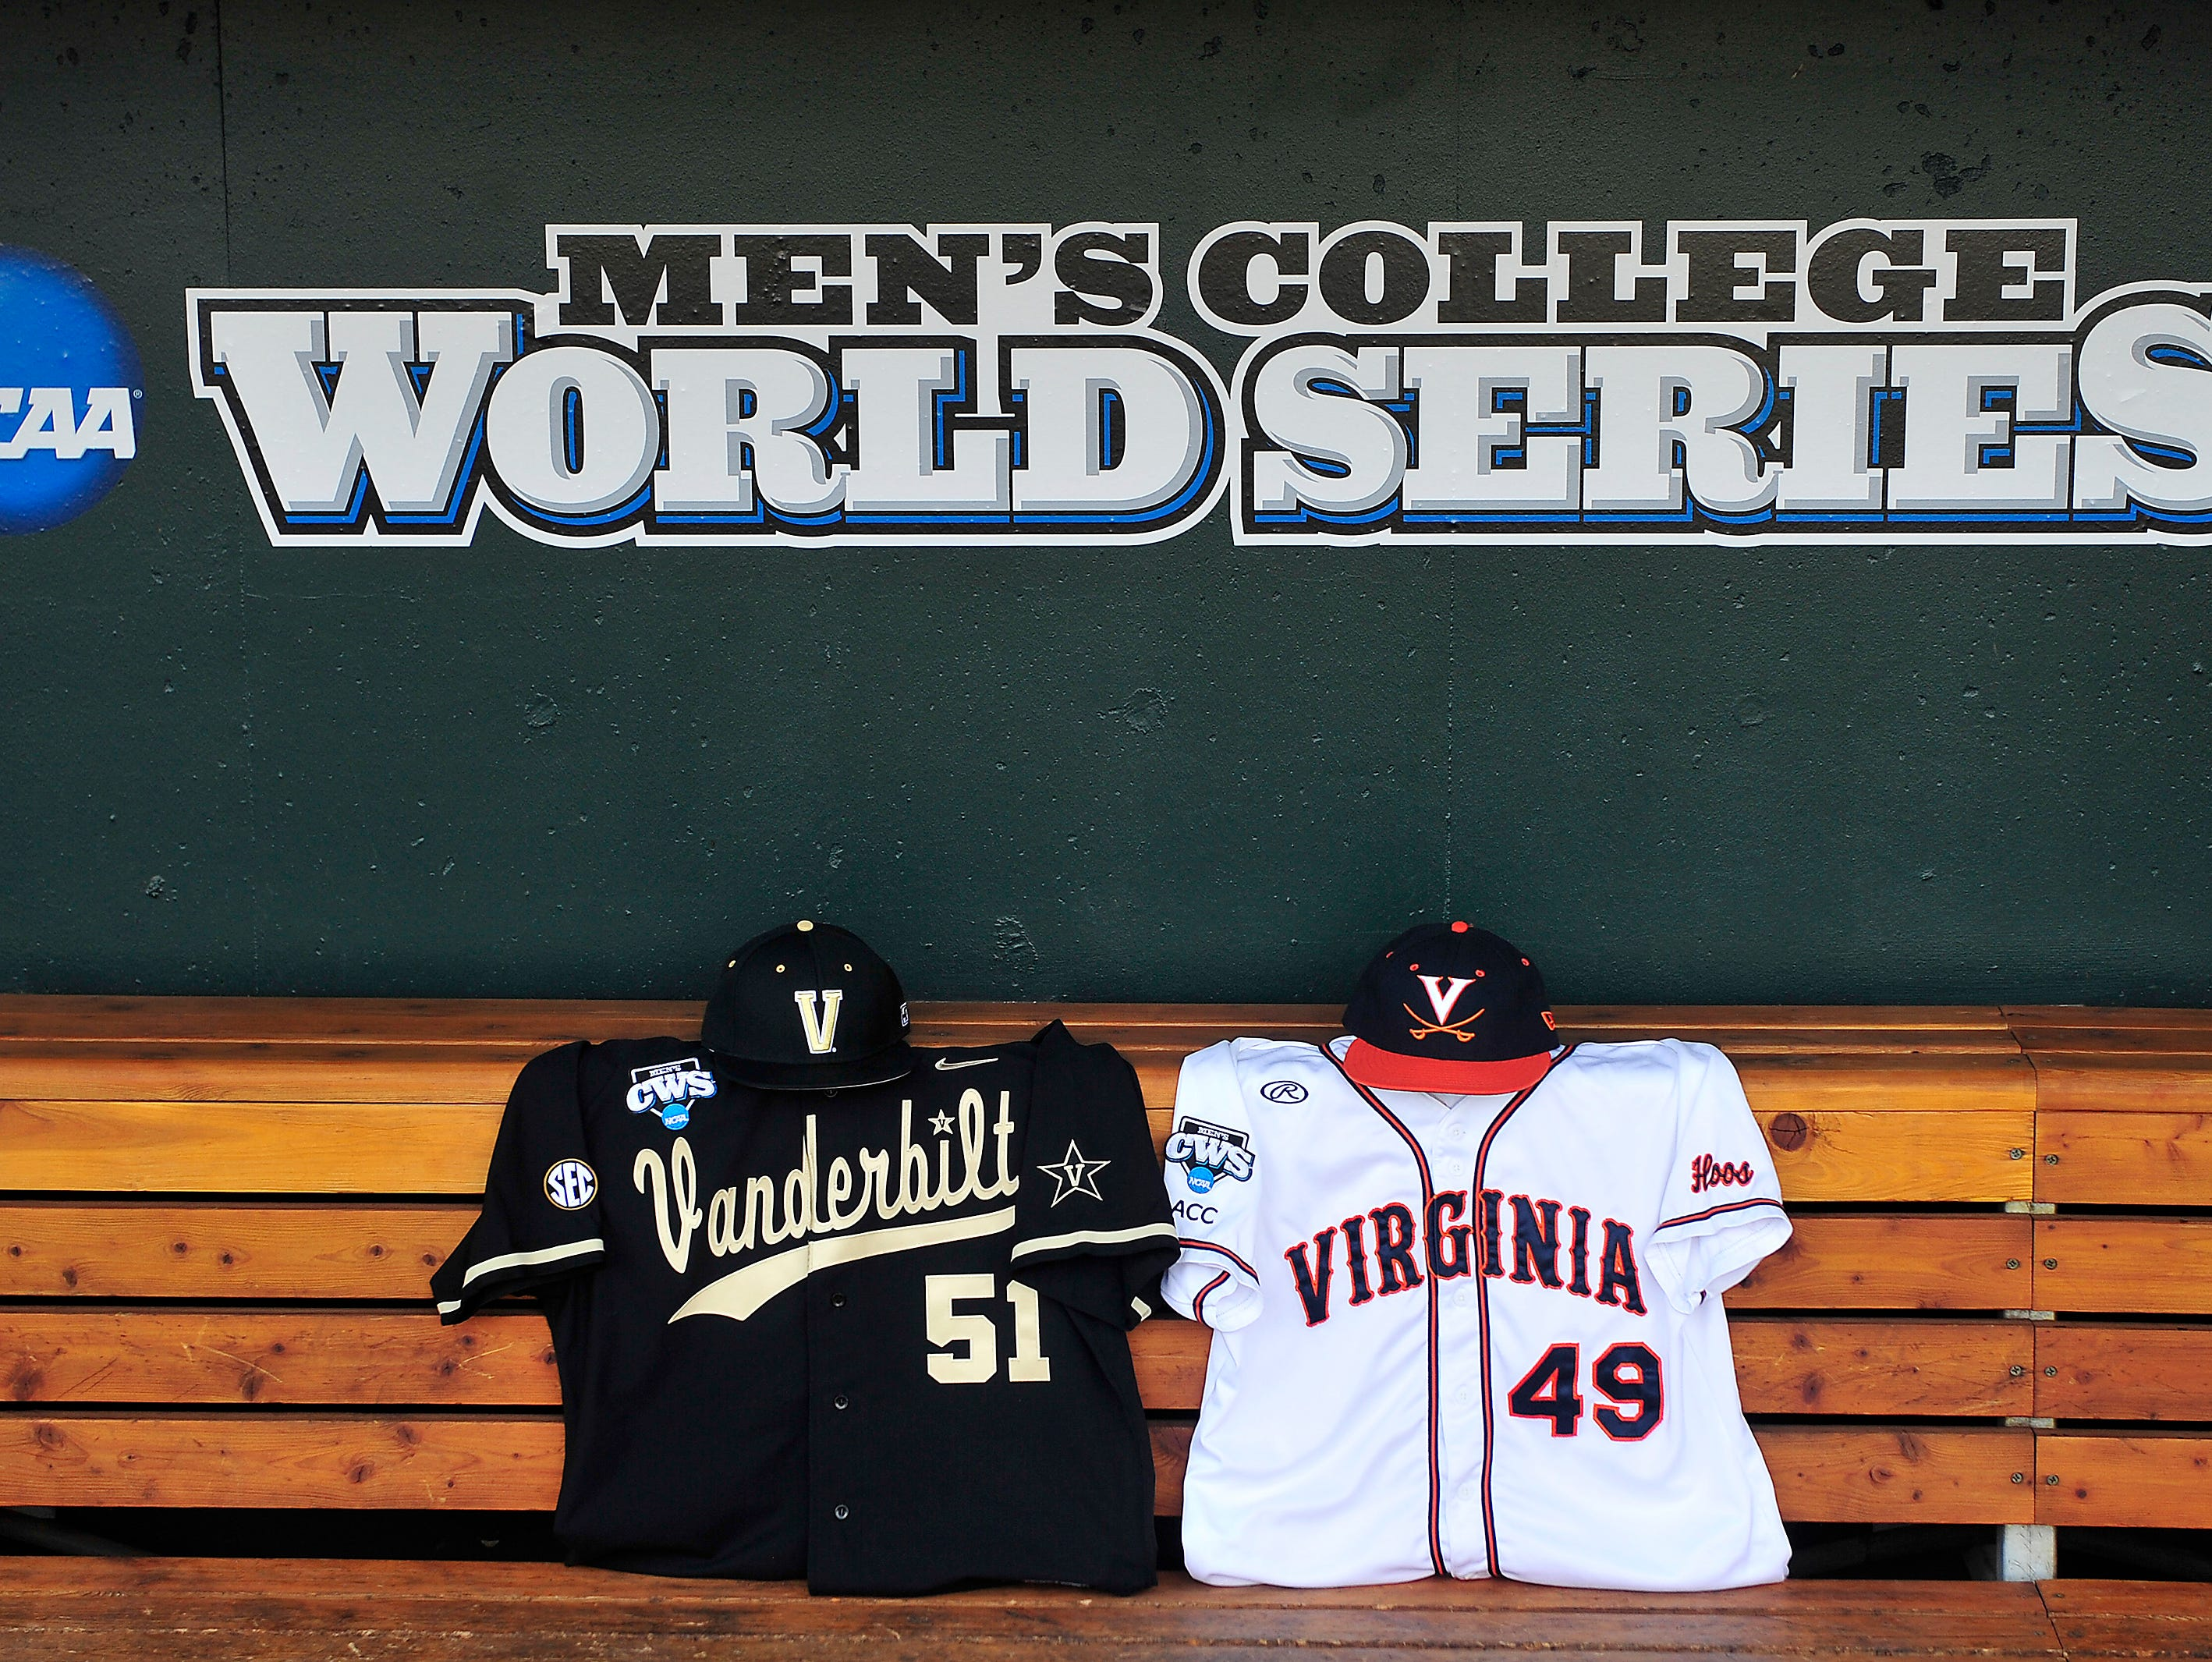 Vanderbilt and Virginia jerseys sit in the bench at the College World Series at TD Ameritrade Park in Omaha, Neb., Wednesday, June 25, 2014.